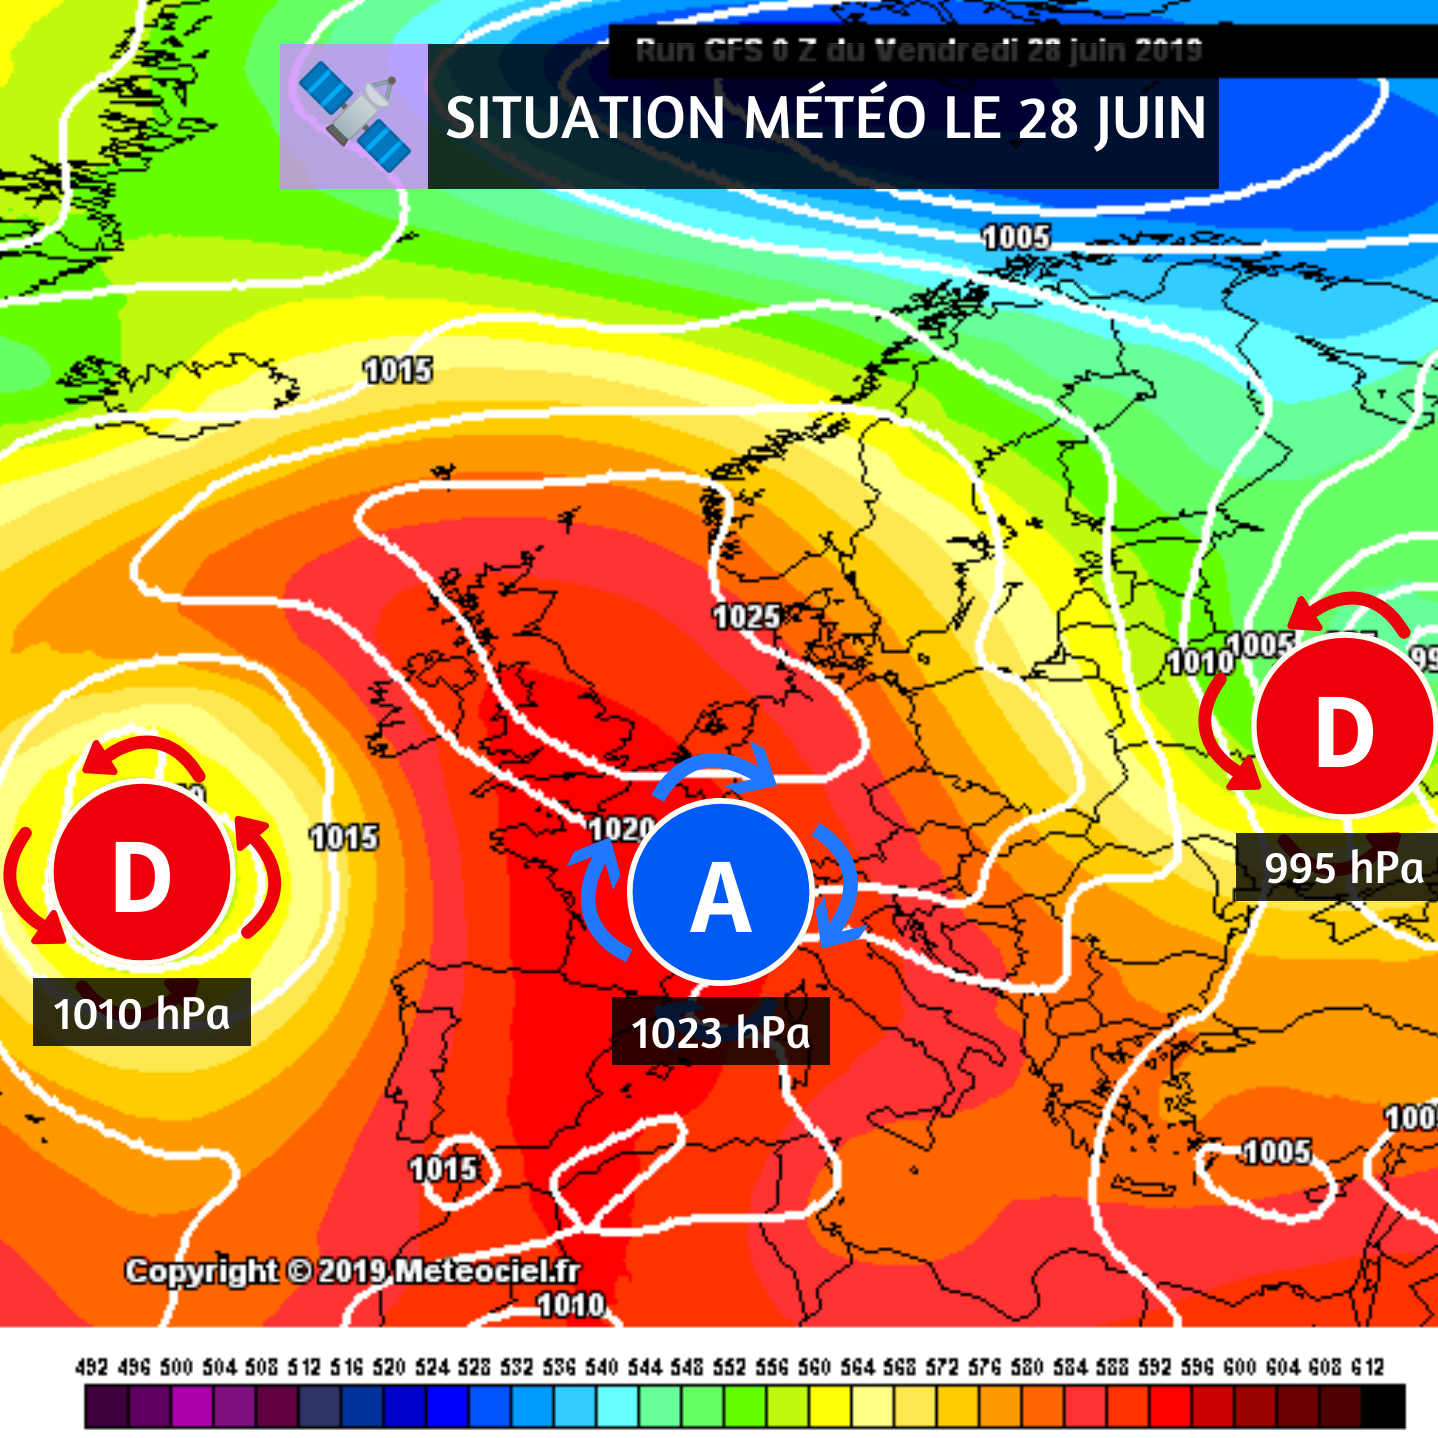 photo: Météo Ciel; desc: Cartes du modèle GFS Europe - Archives;link:https://www.meteociel.fr/modeles/gfse_cartes.php?ech=6&code=0&carte=0&mode=0&archive=1&runpara=0;